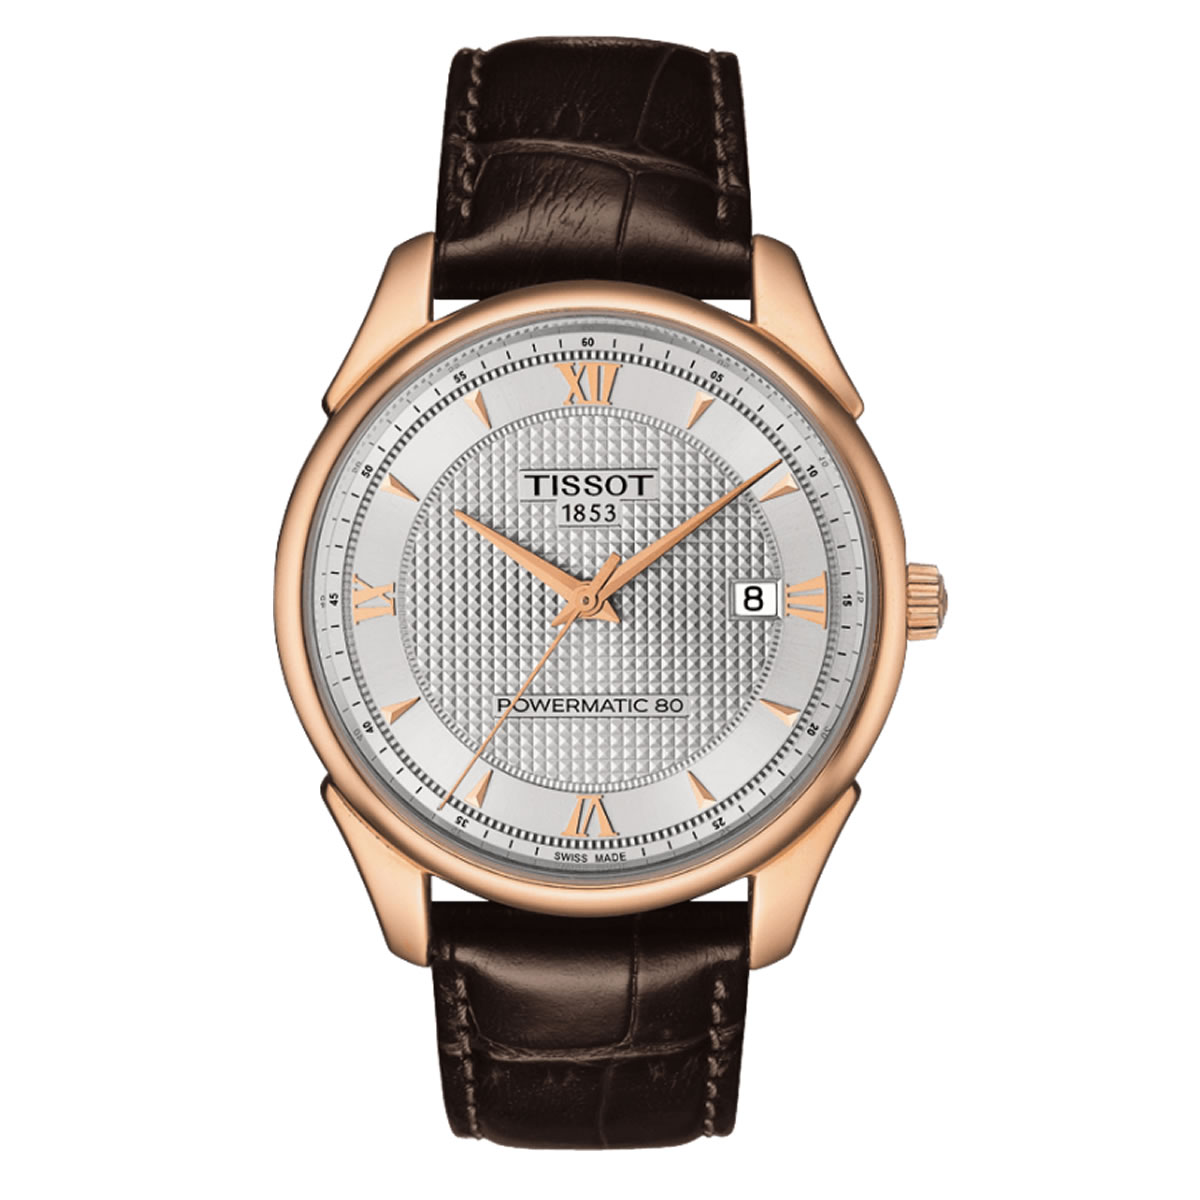 TISSOT VINTAGE AUTOMATIC パワーマティック80 ジェント T920.407.76.038.00